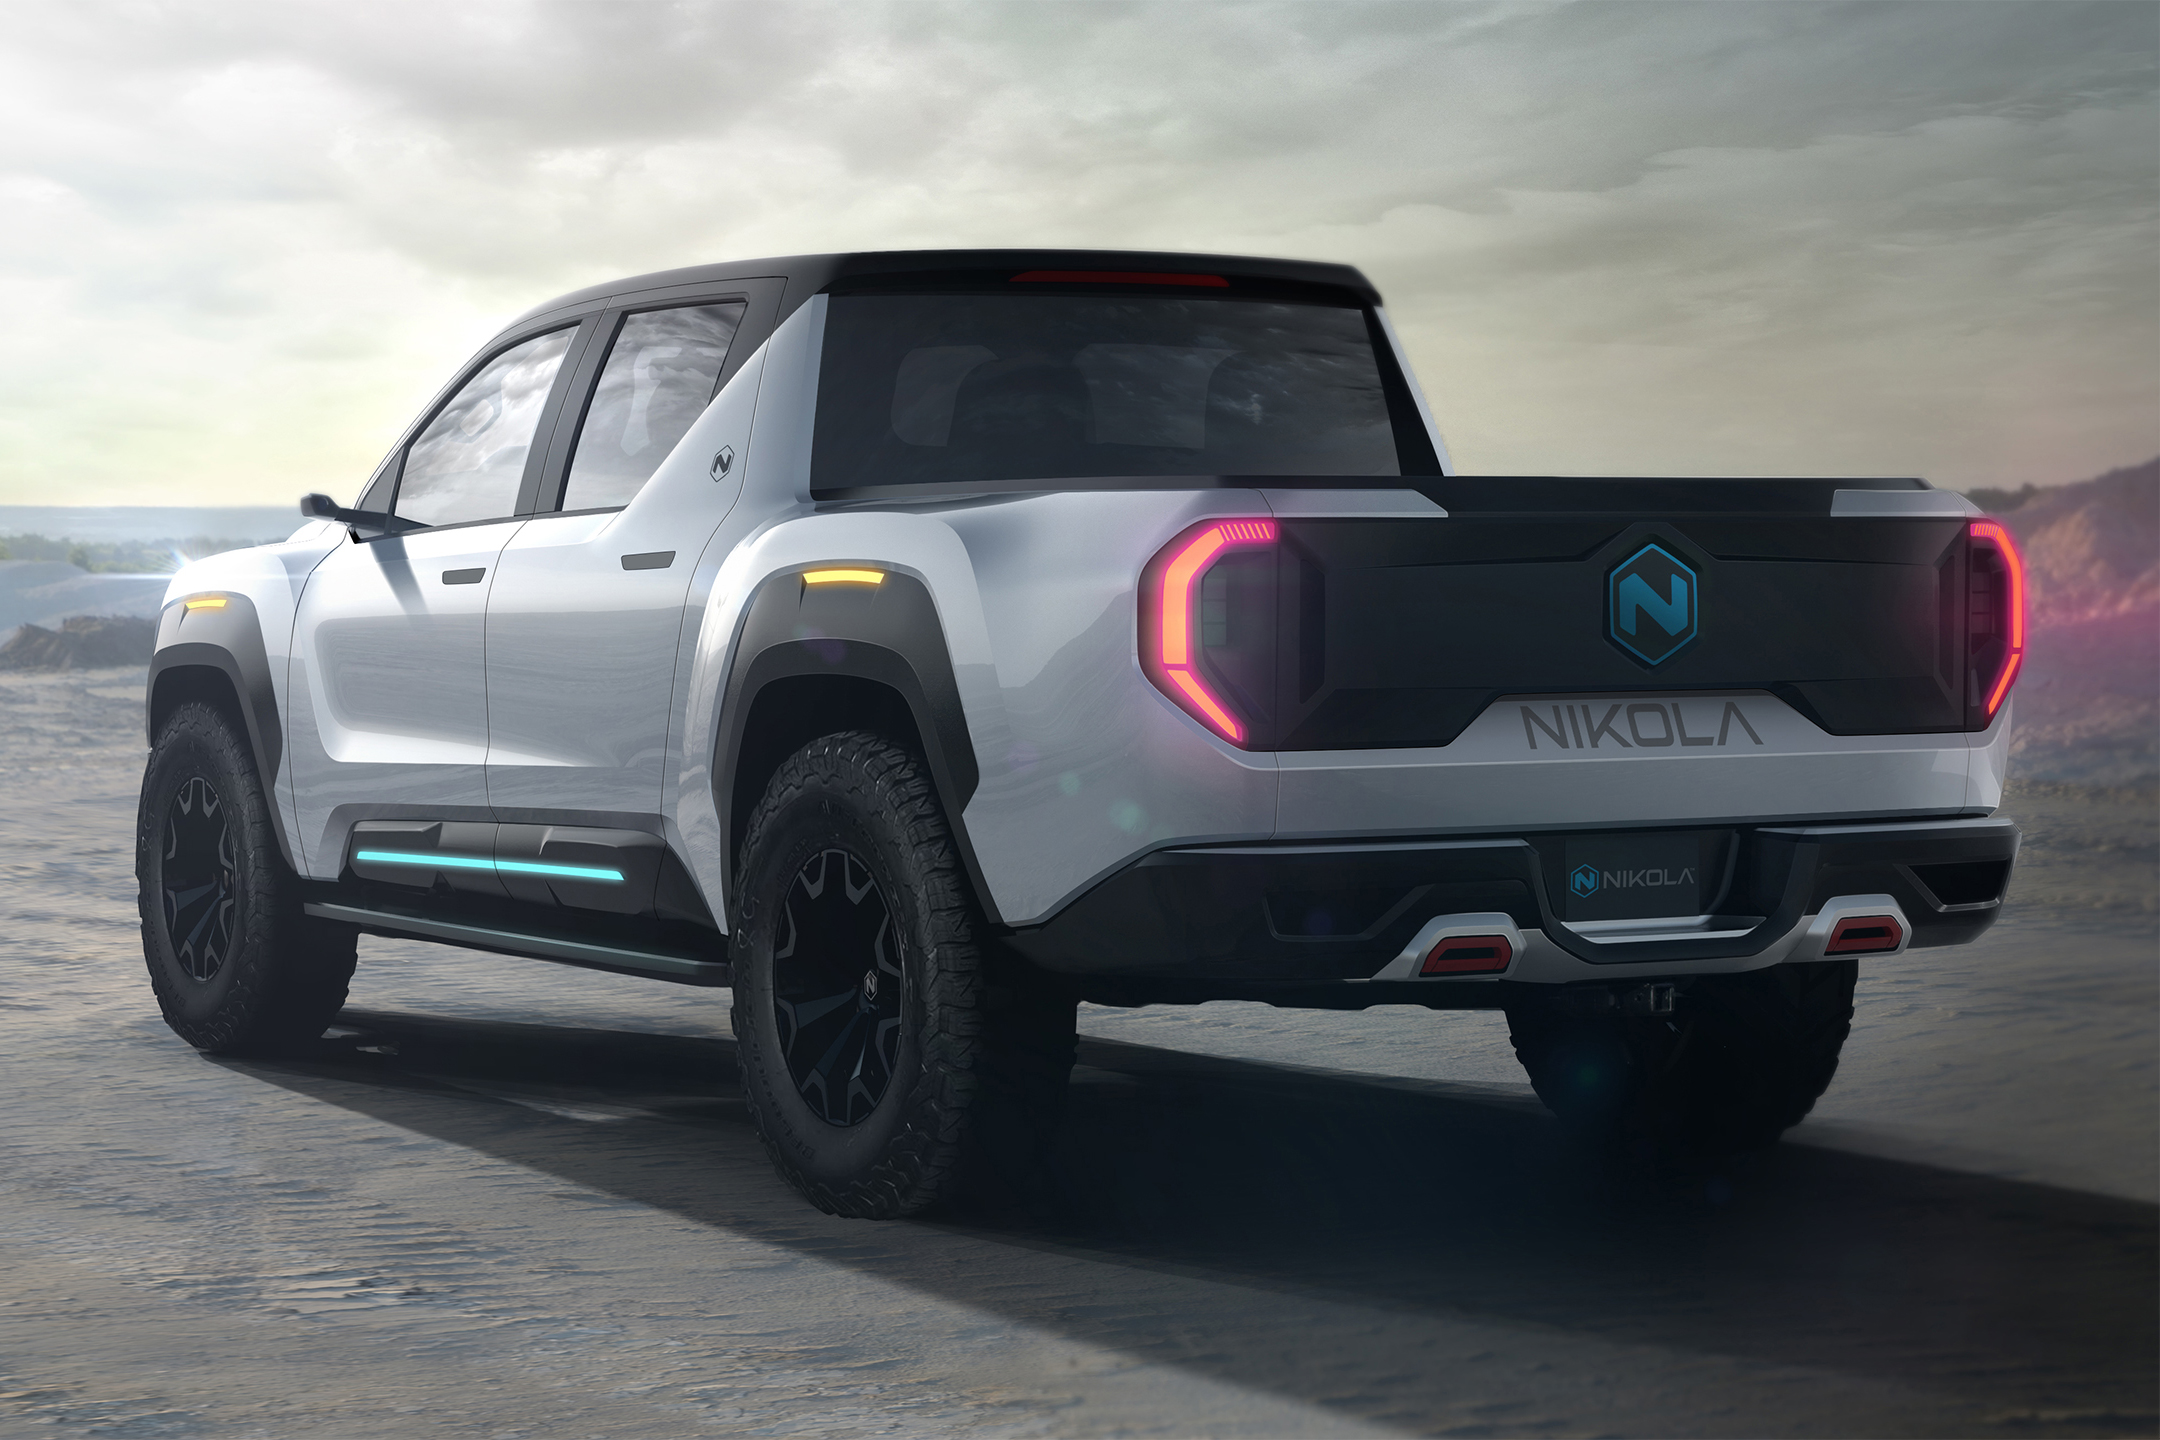 Nikola Badger hydrogen fuel cell electric pickup truck